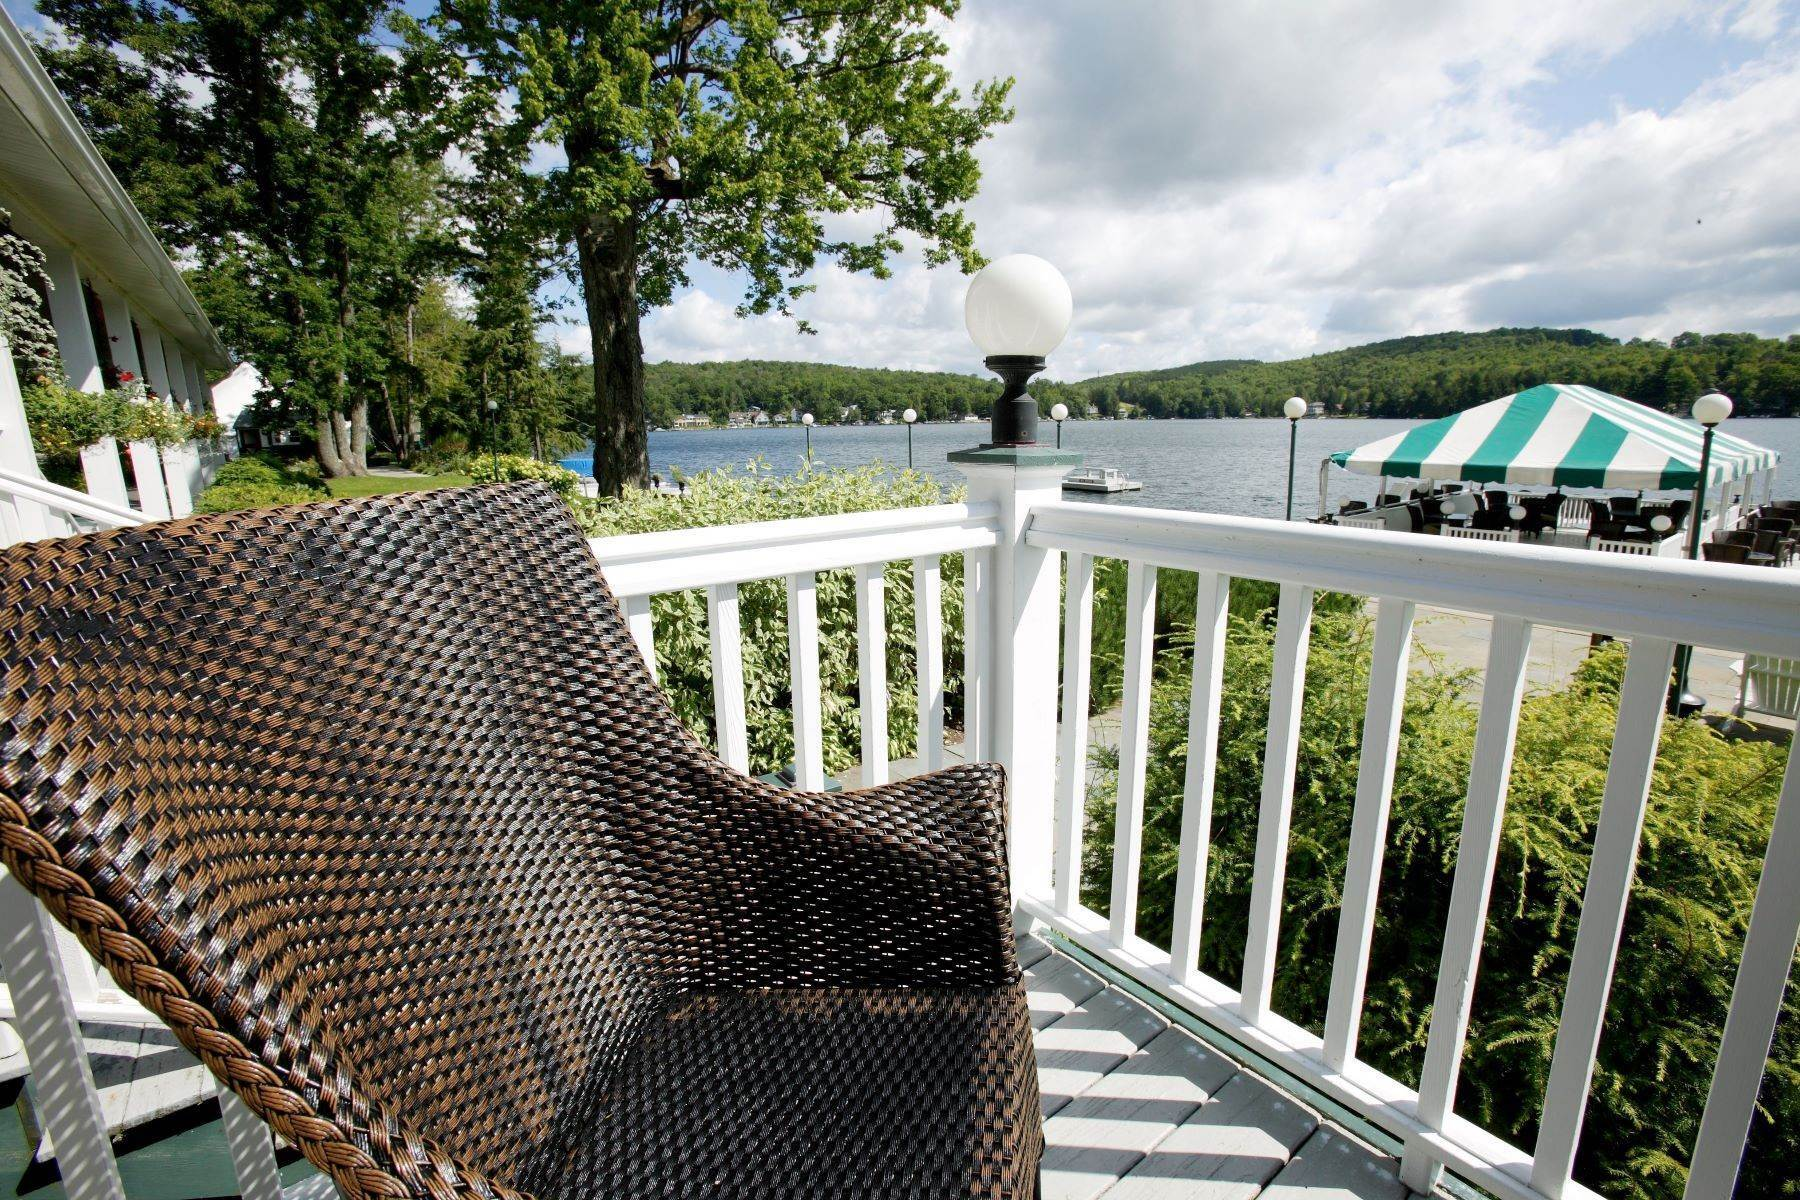 3. Single Family Homes for Sale at Chestnut Inn on Oquaga Lake 505 Oquaga Lake Road Sanford, New York 13754 United States